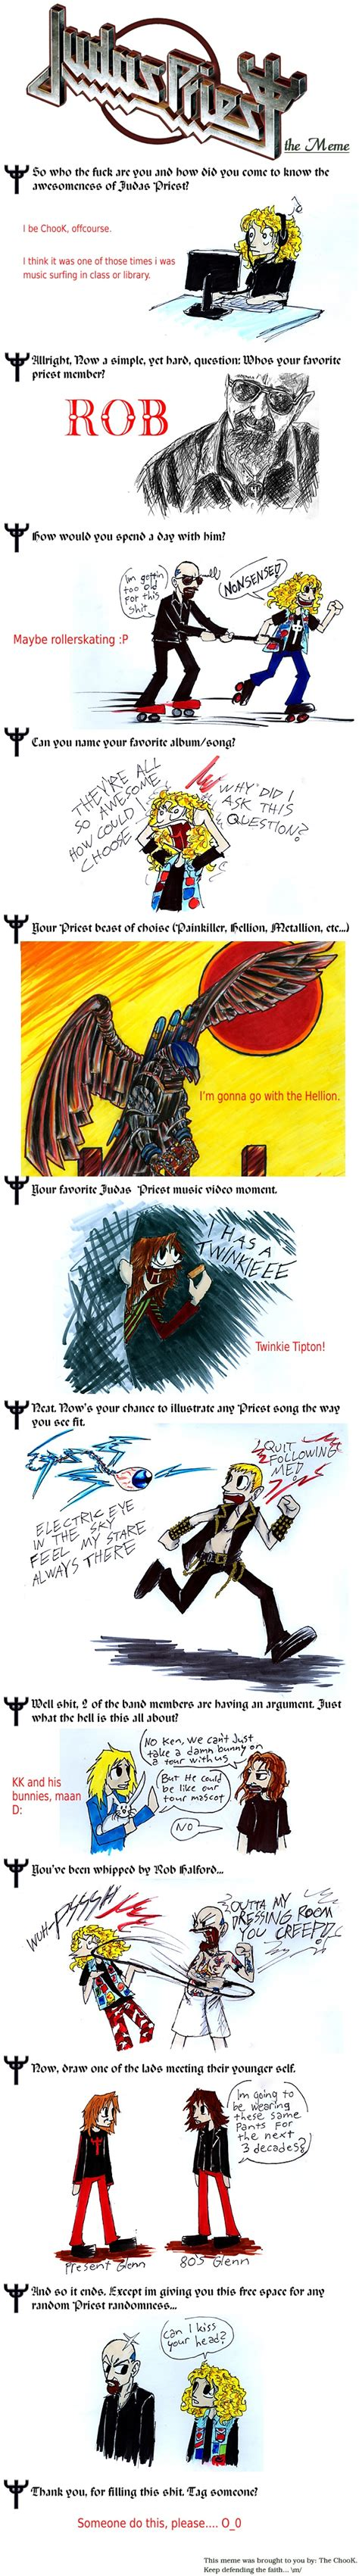 Judas Priest Meme - judas priest meme by the chook on deviantart